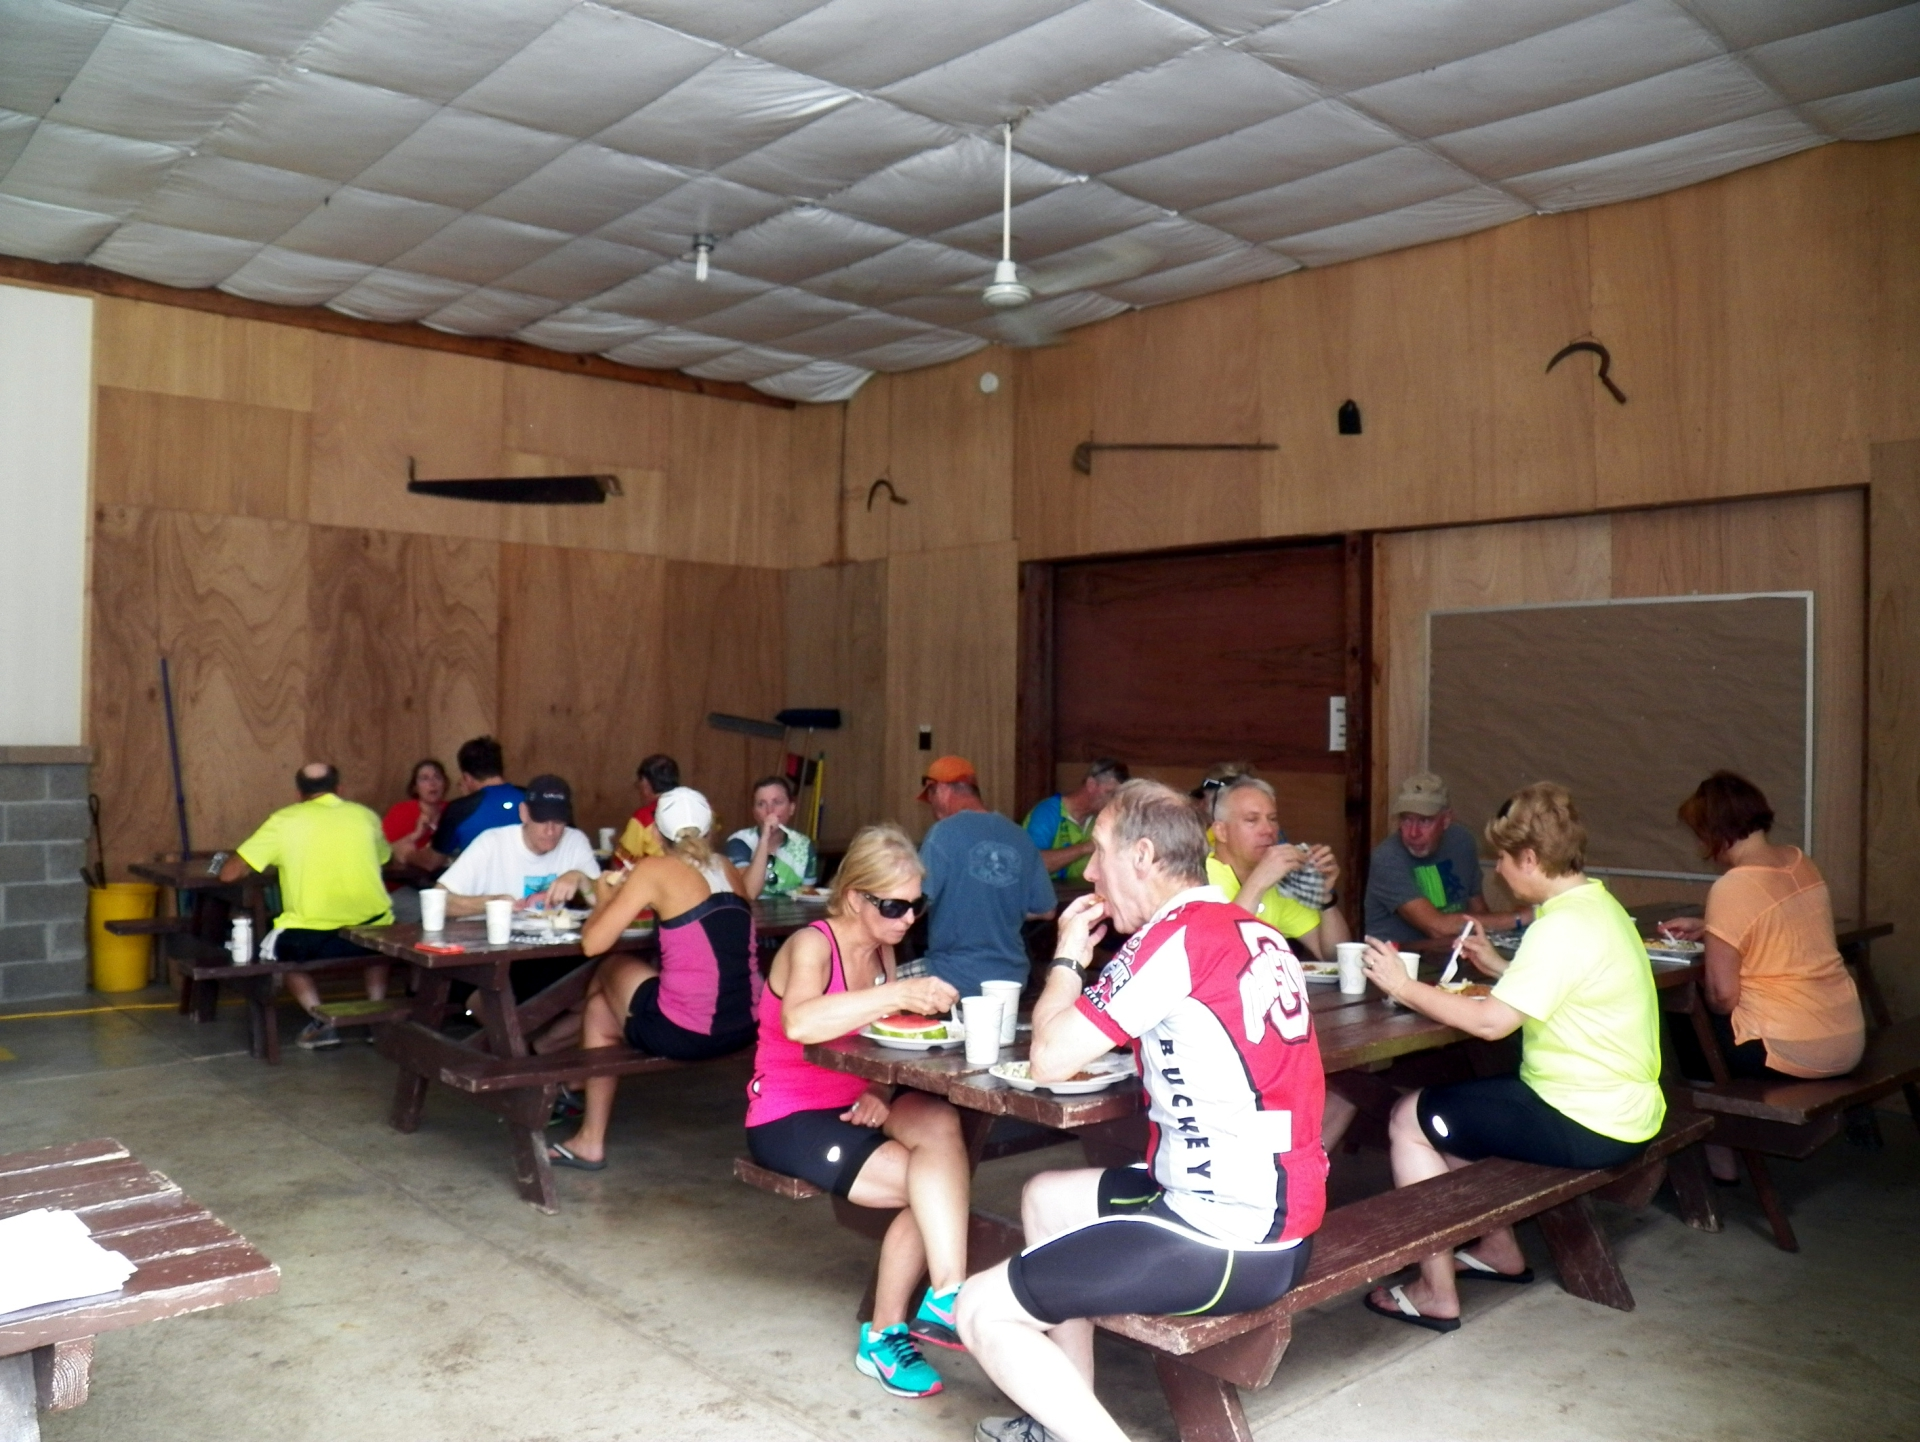 Enjoying lunch after a day's bike ride